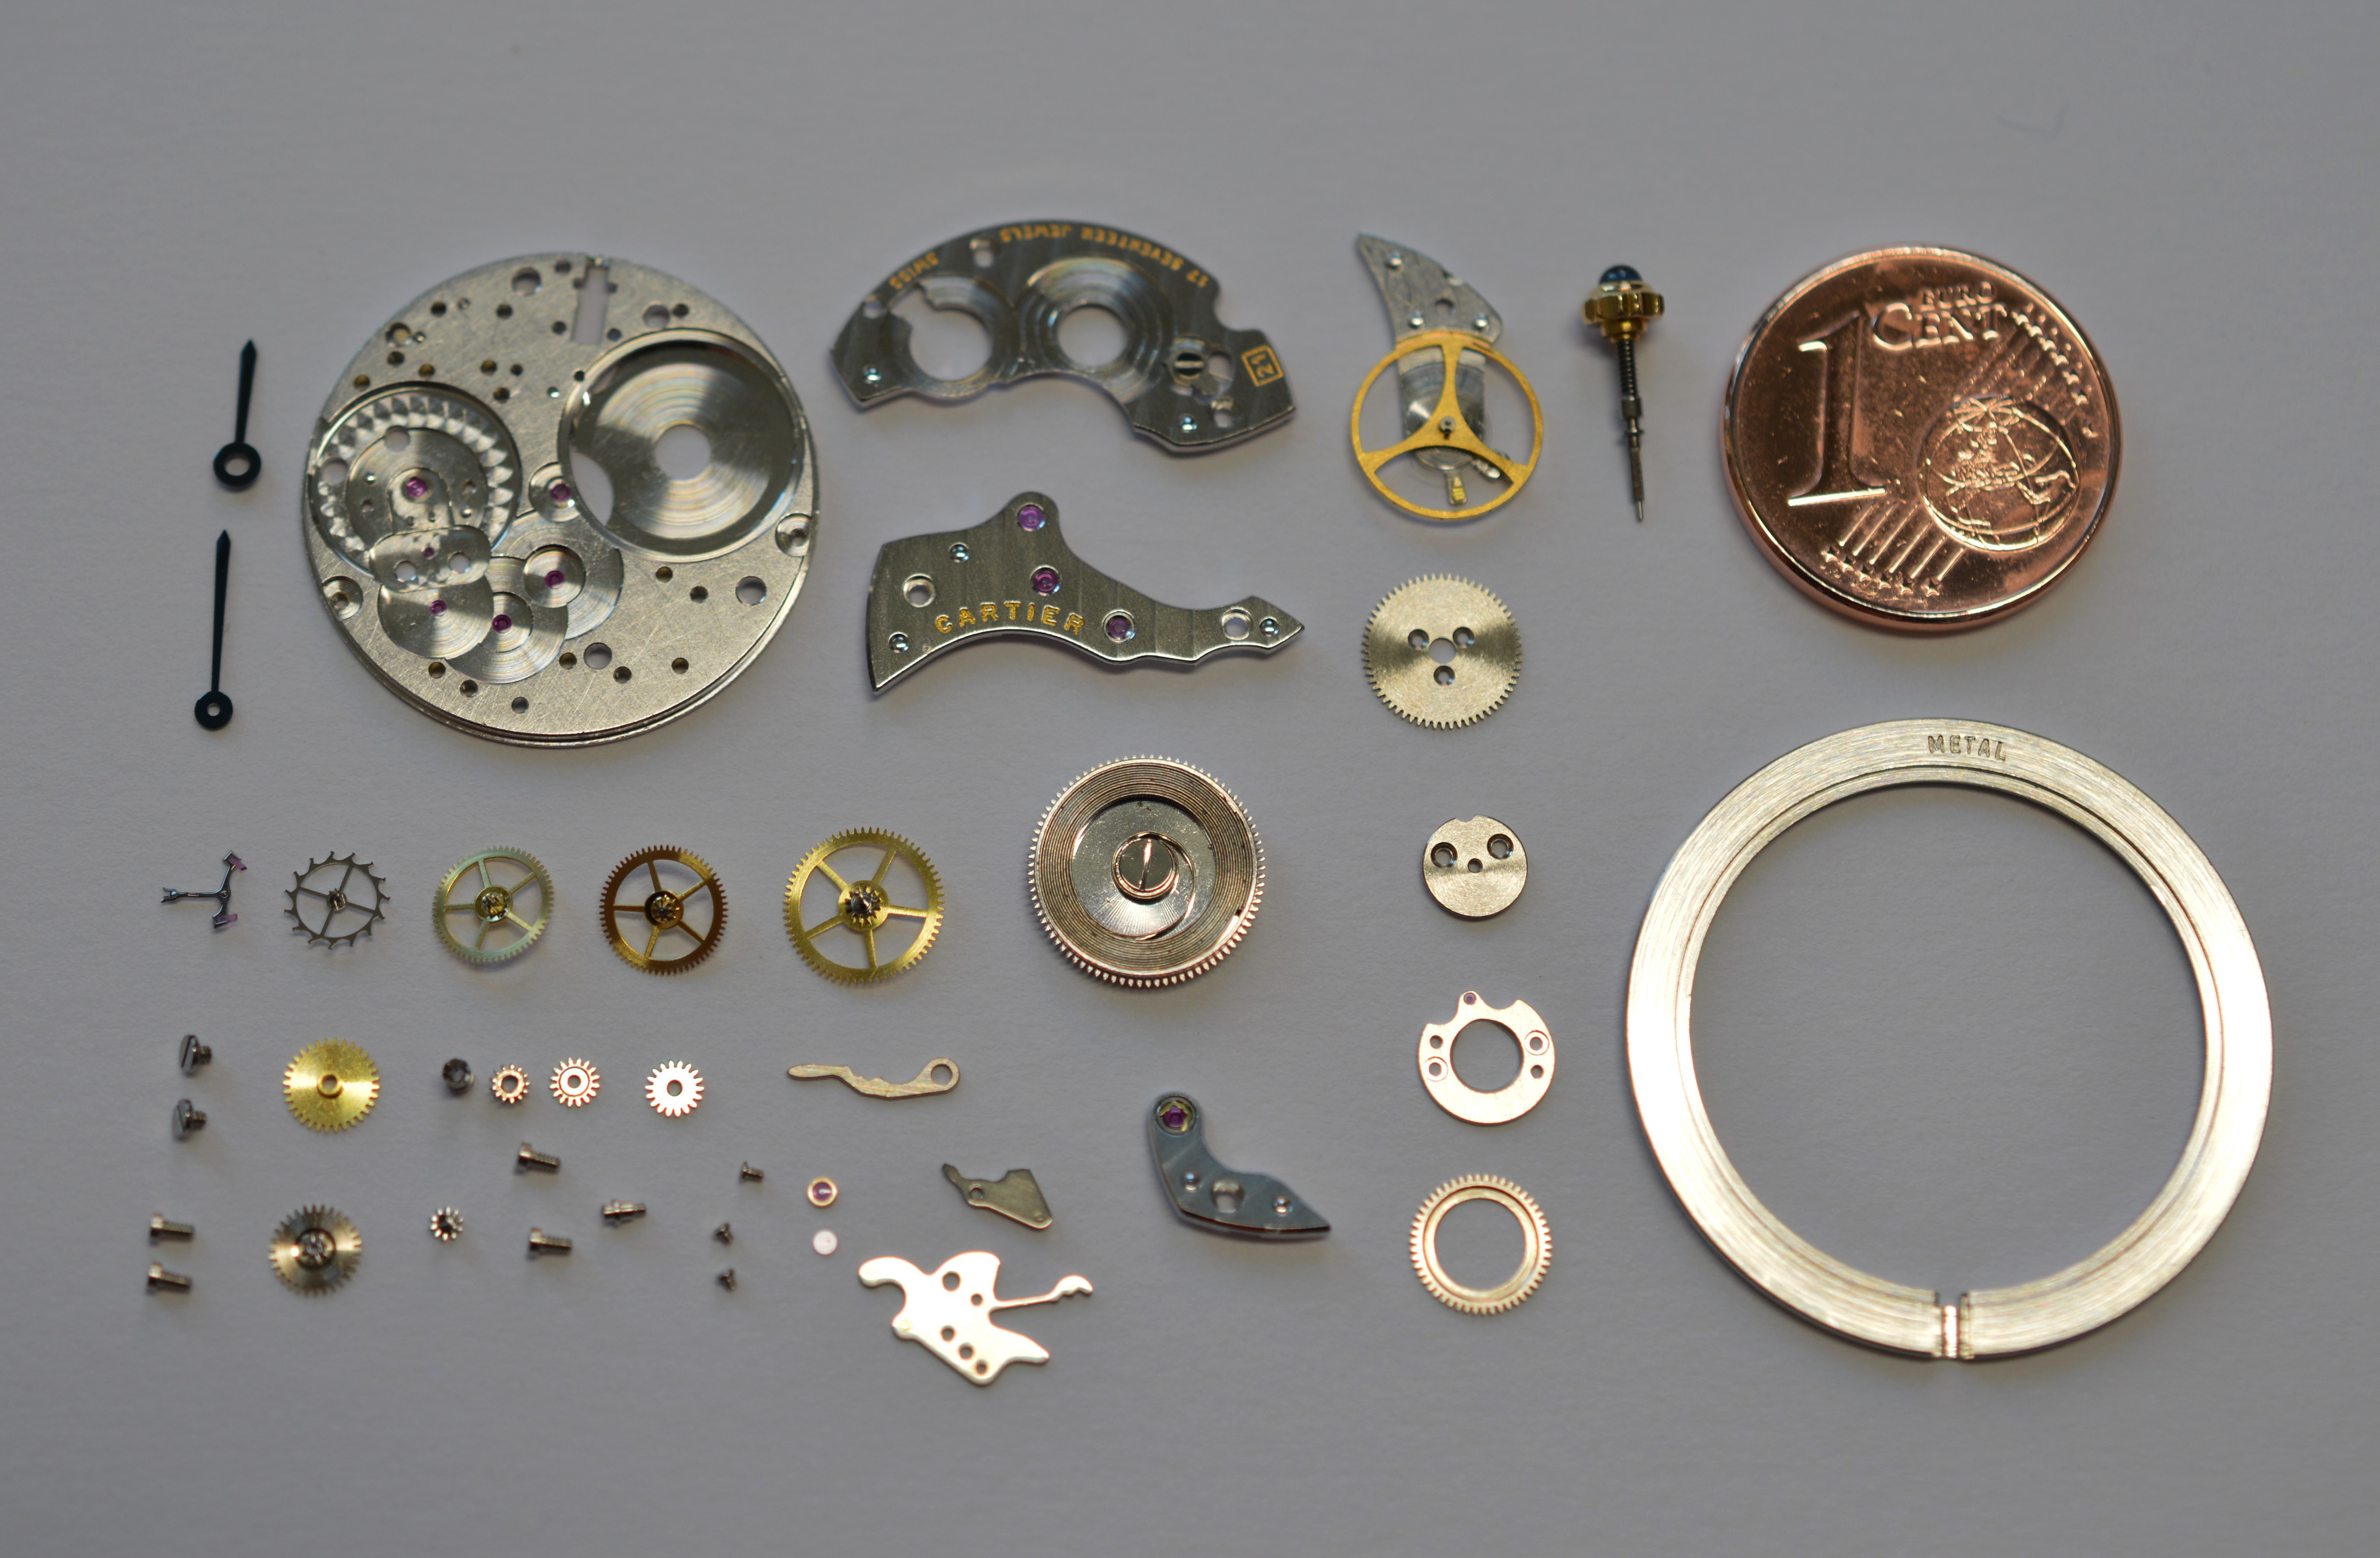 Individual components of a Cartier three-hand watch movement on a grey surface